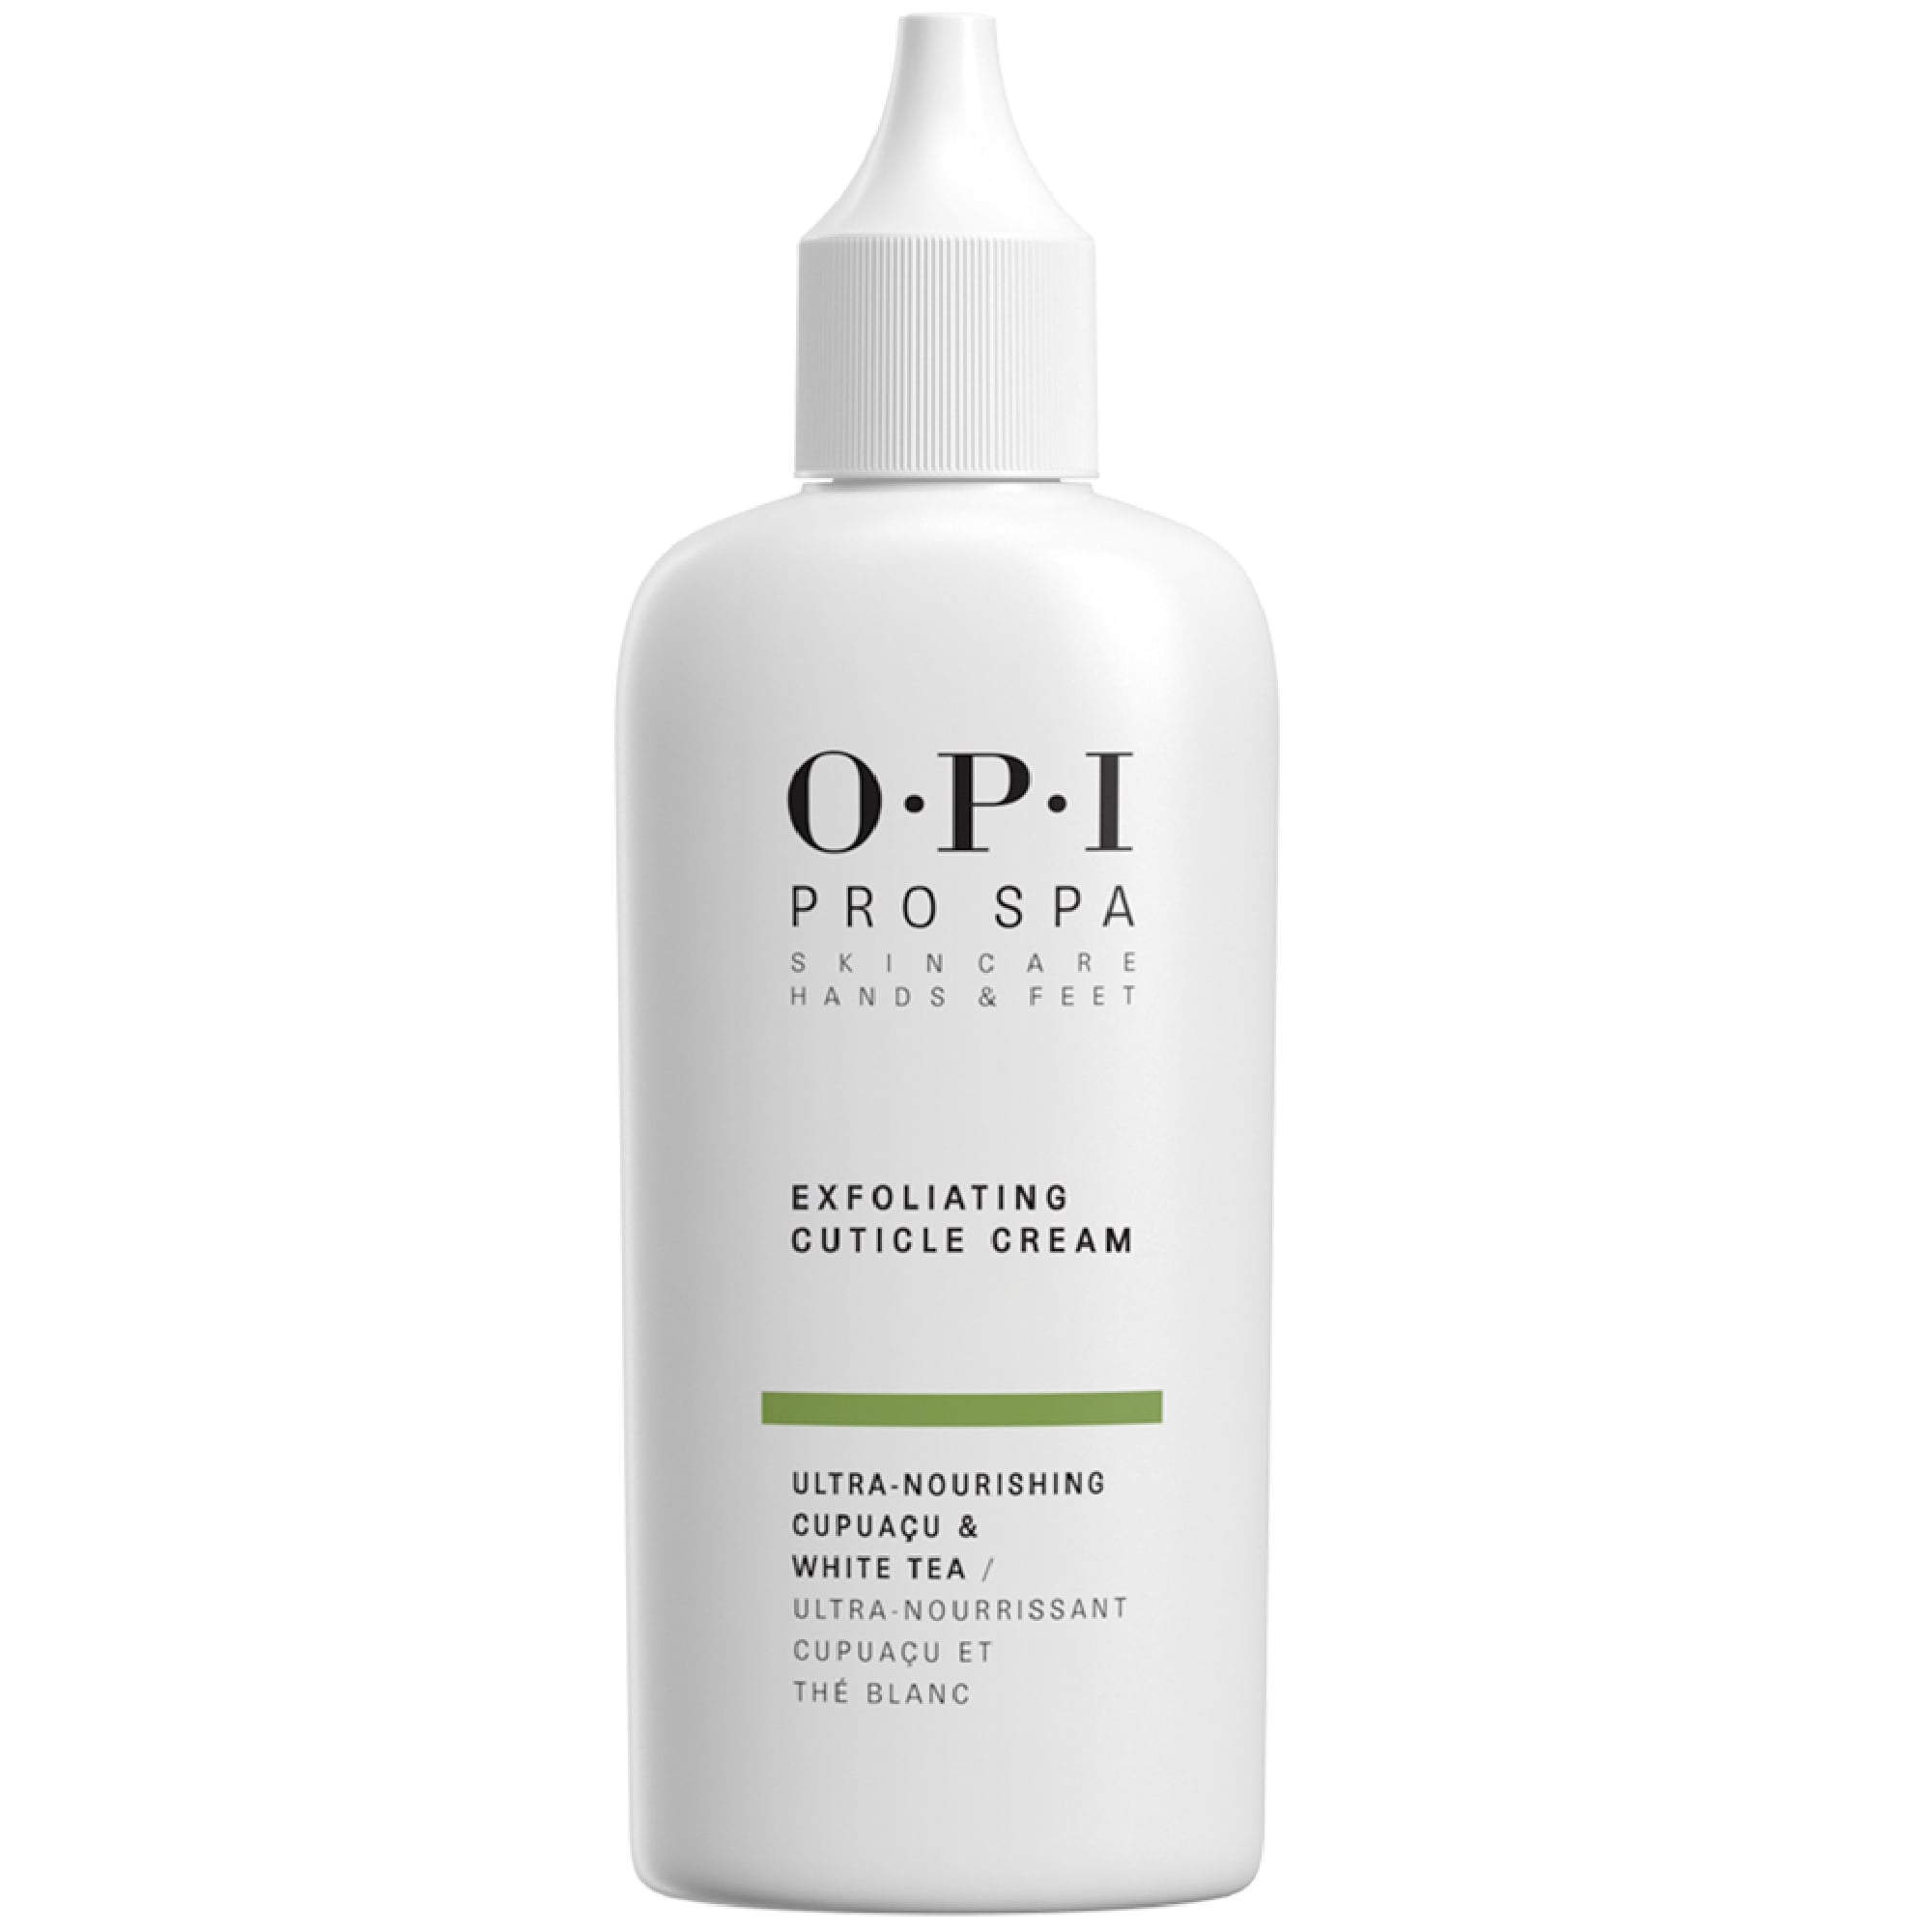 opi pro spa exfoliating cuticle cream beautyvit huidverbetering dreef 10 breda